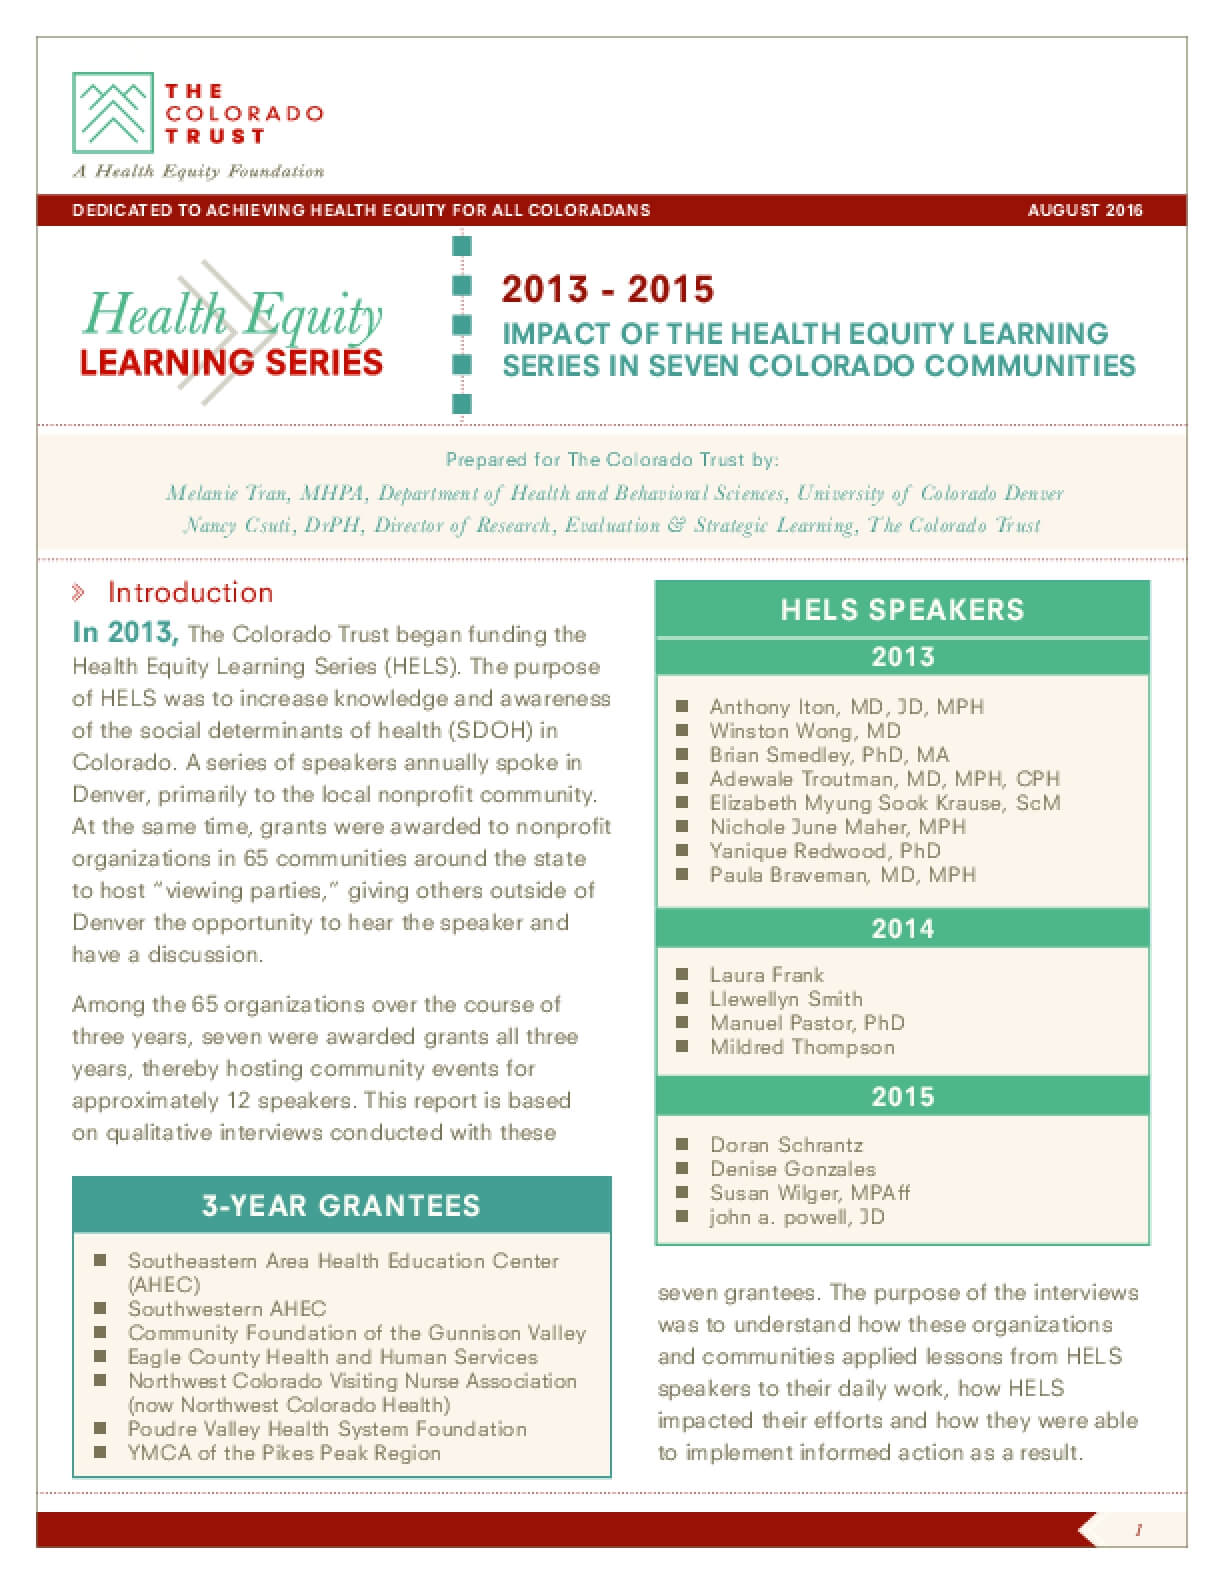 Impact of the Health Equity Learning Series in Seven Colorado Communities